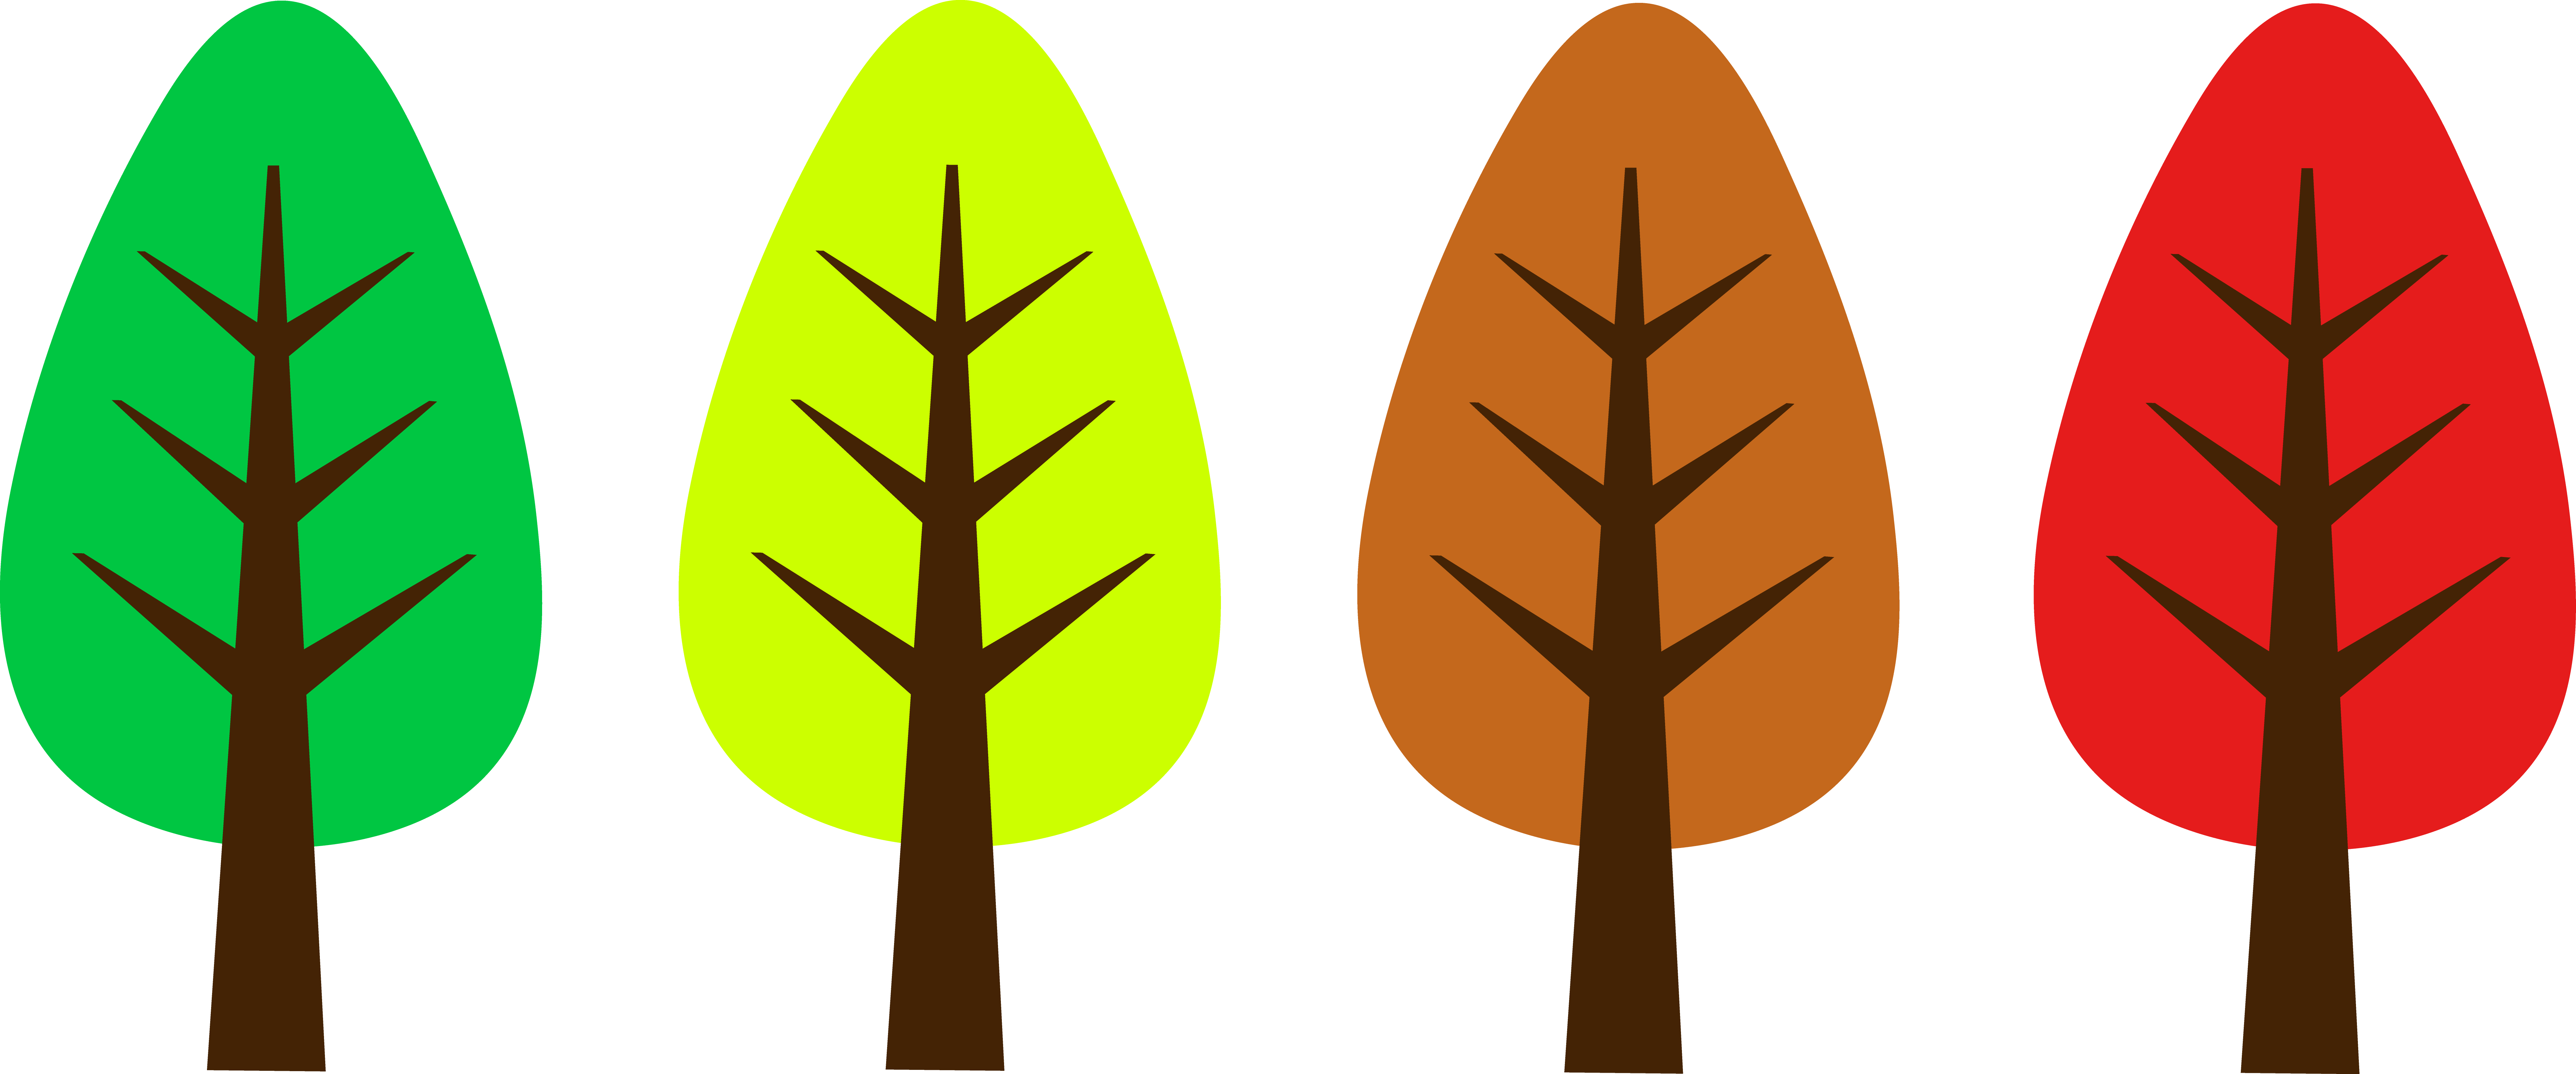 Cute simple tree free. Clipart designs nature